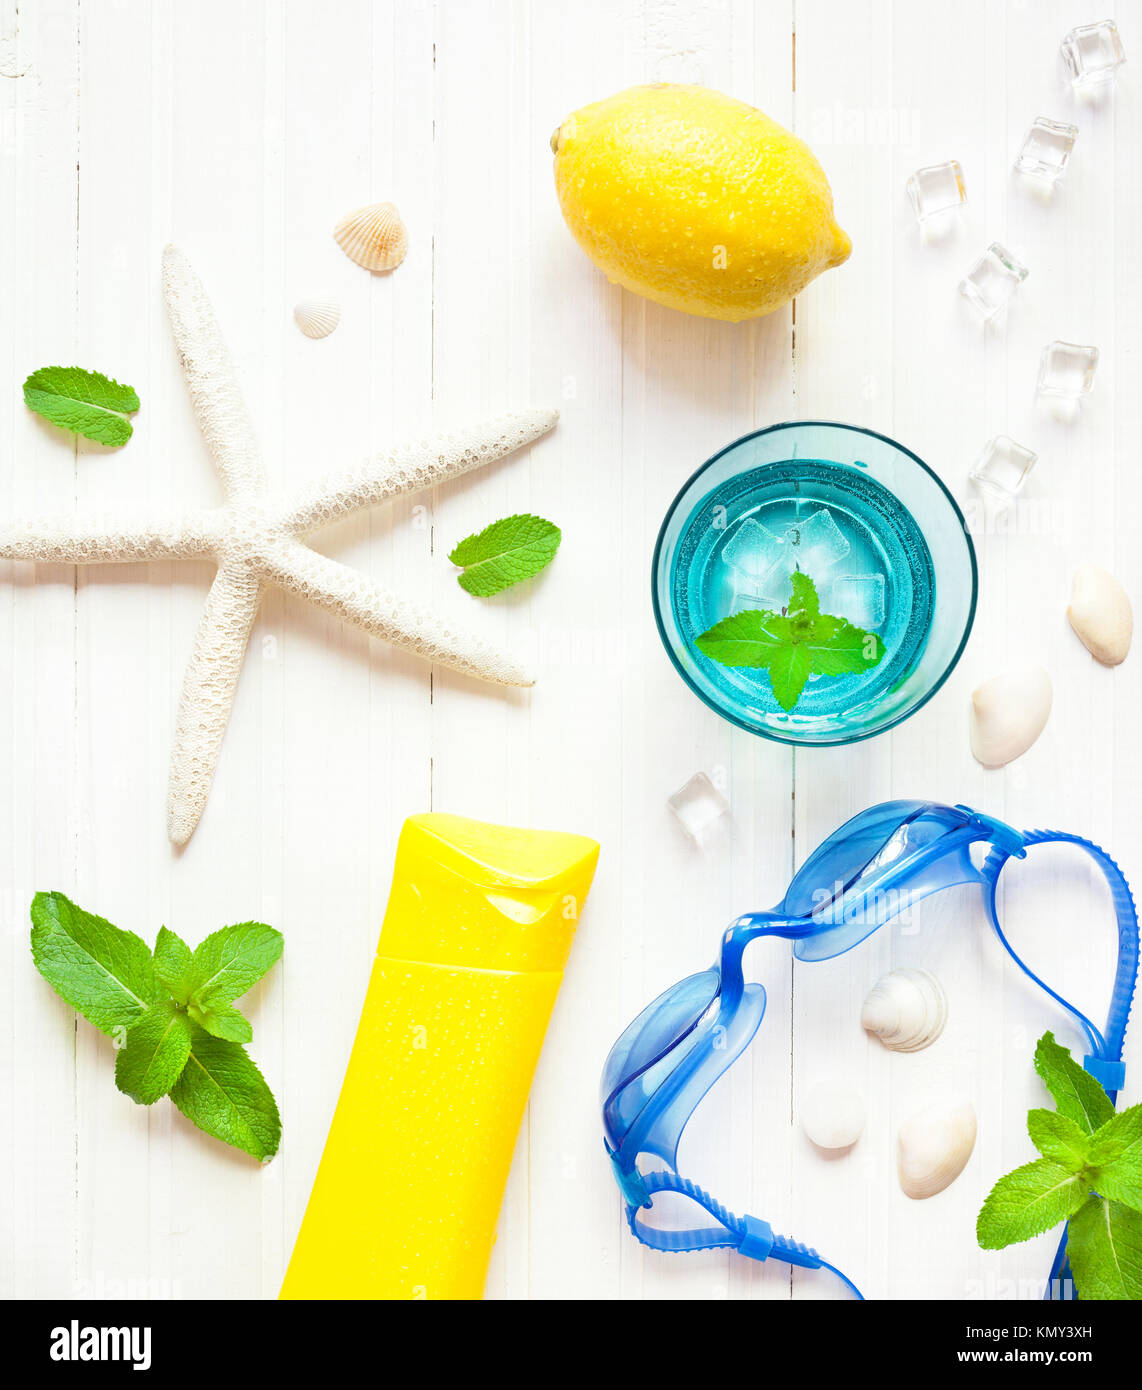 Summer flatlay with watersport goggles, mint cold mojito and sea star on the white table - Stock Image